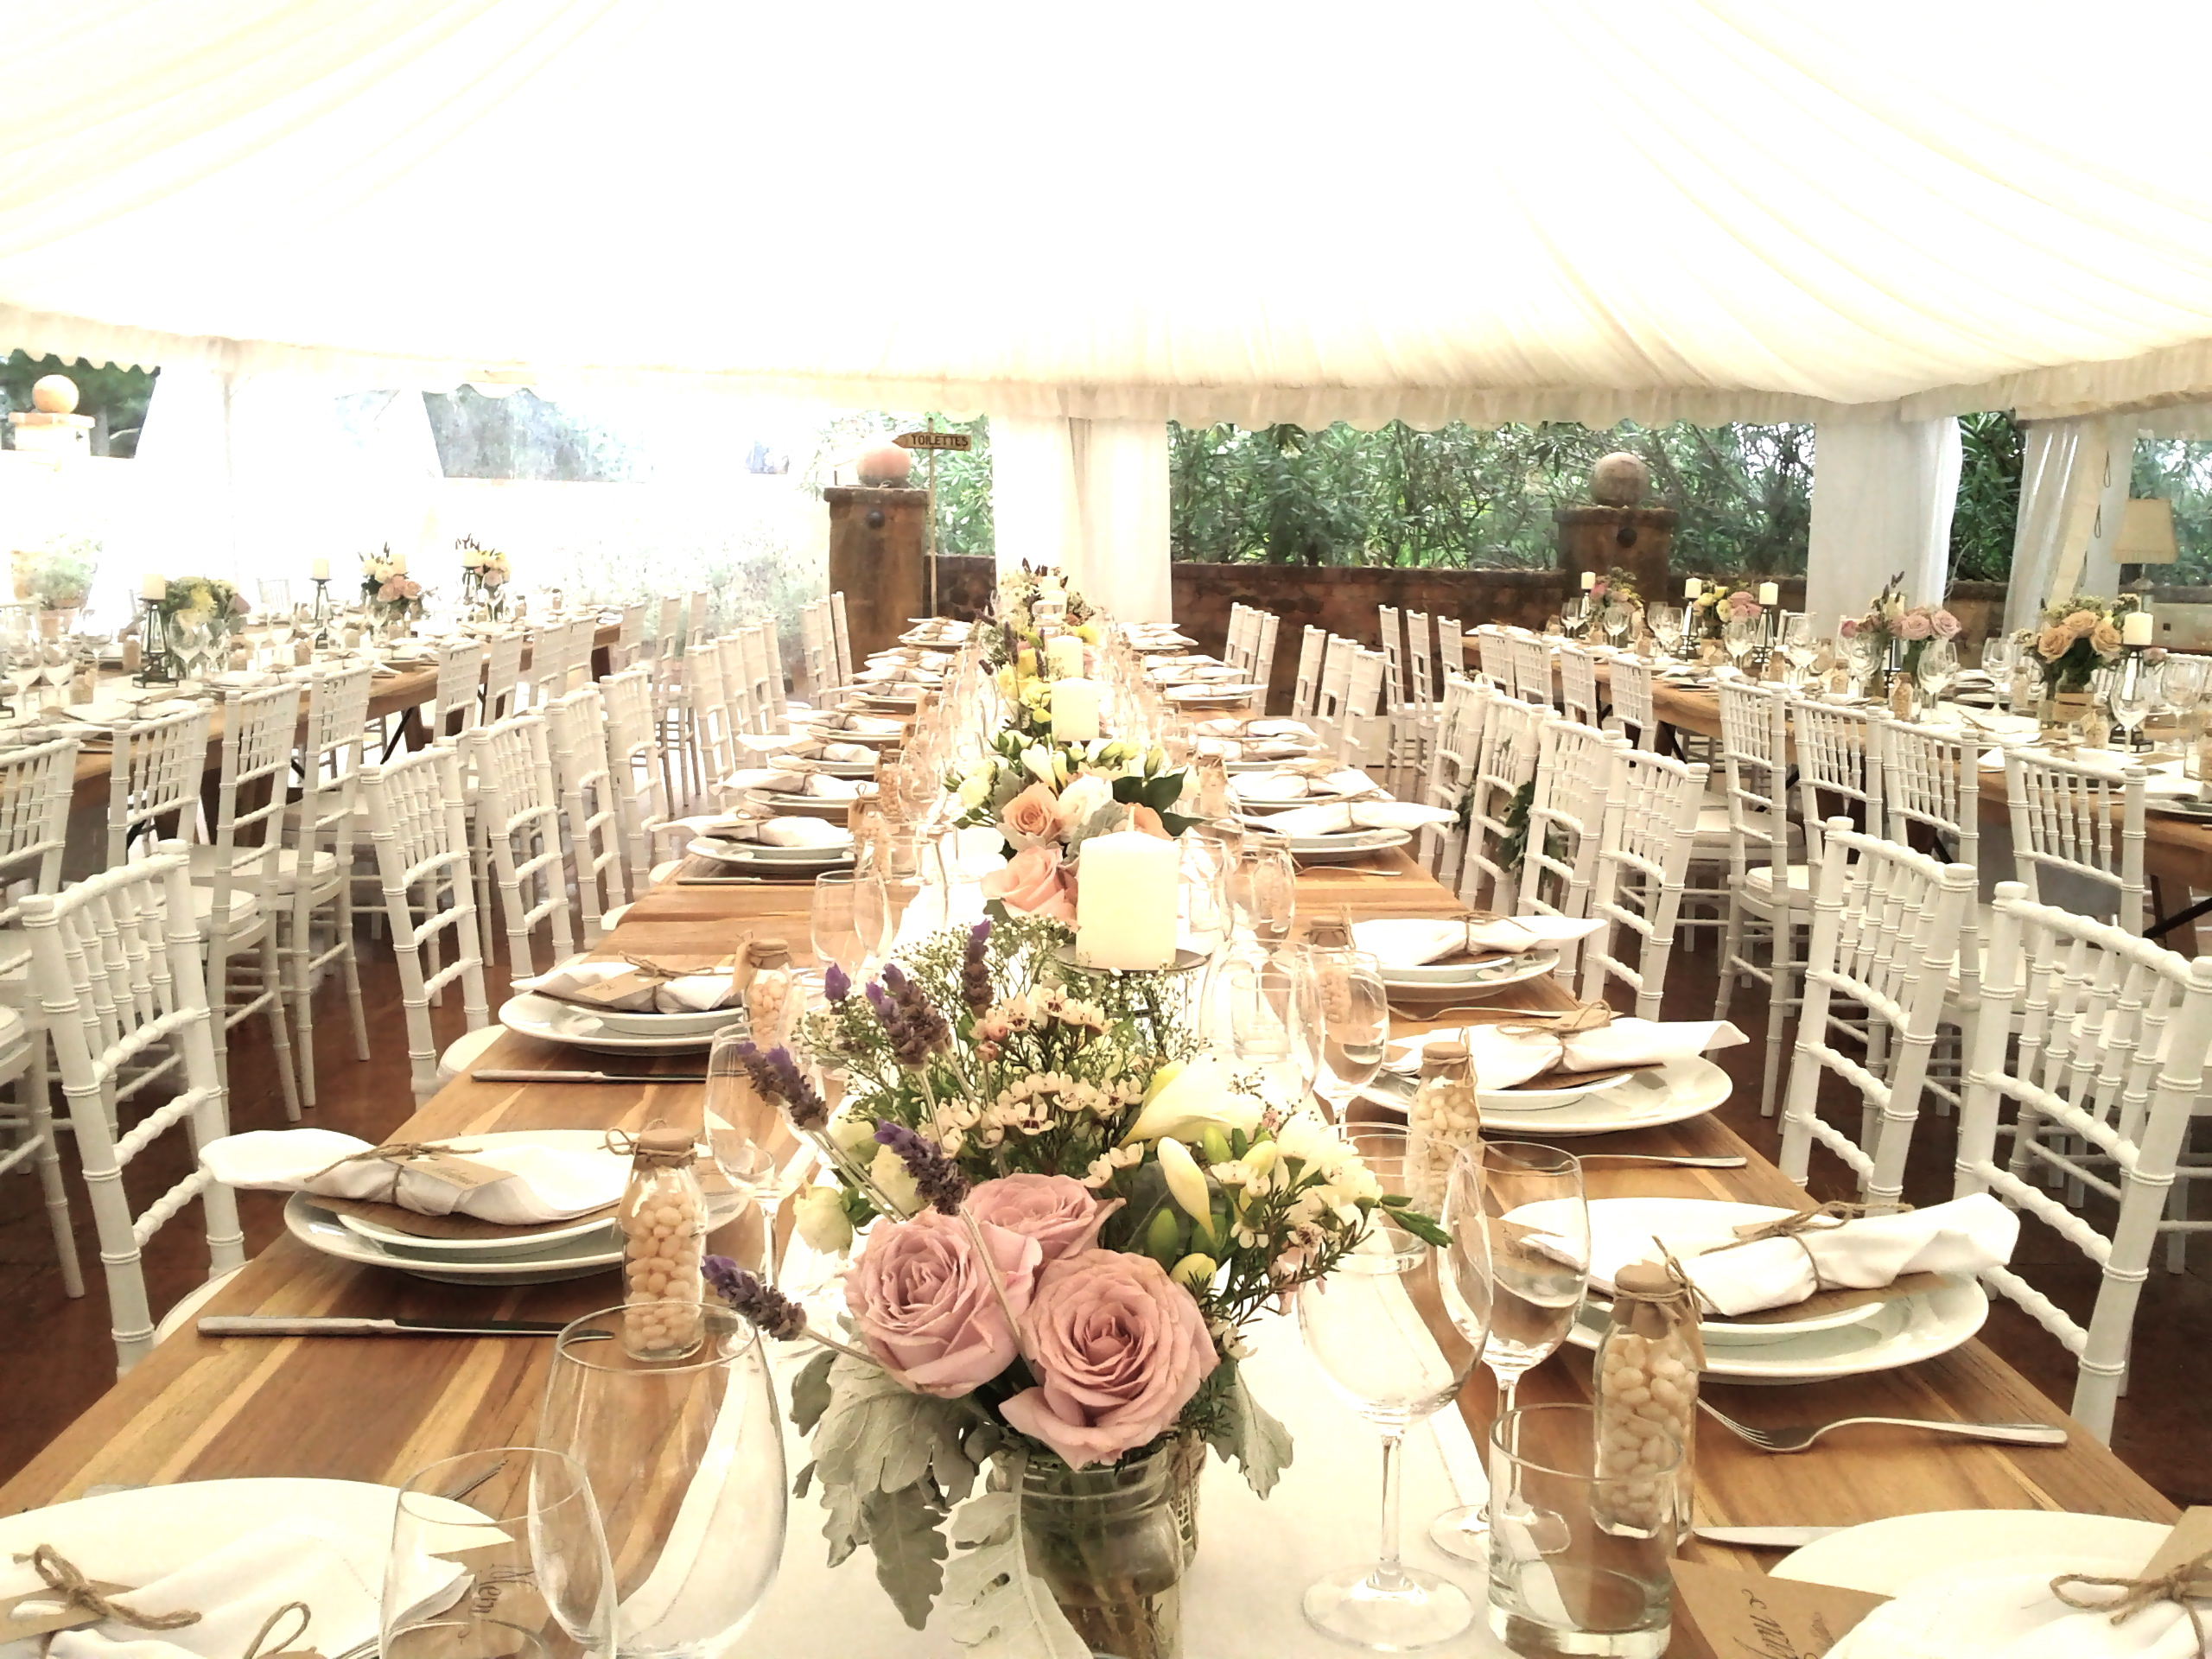 Tiffany chairs wedding ceremony styling tips choosing the right light and pretty summer setting frank and joy junglespirit Image collections